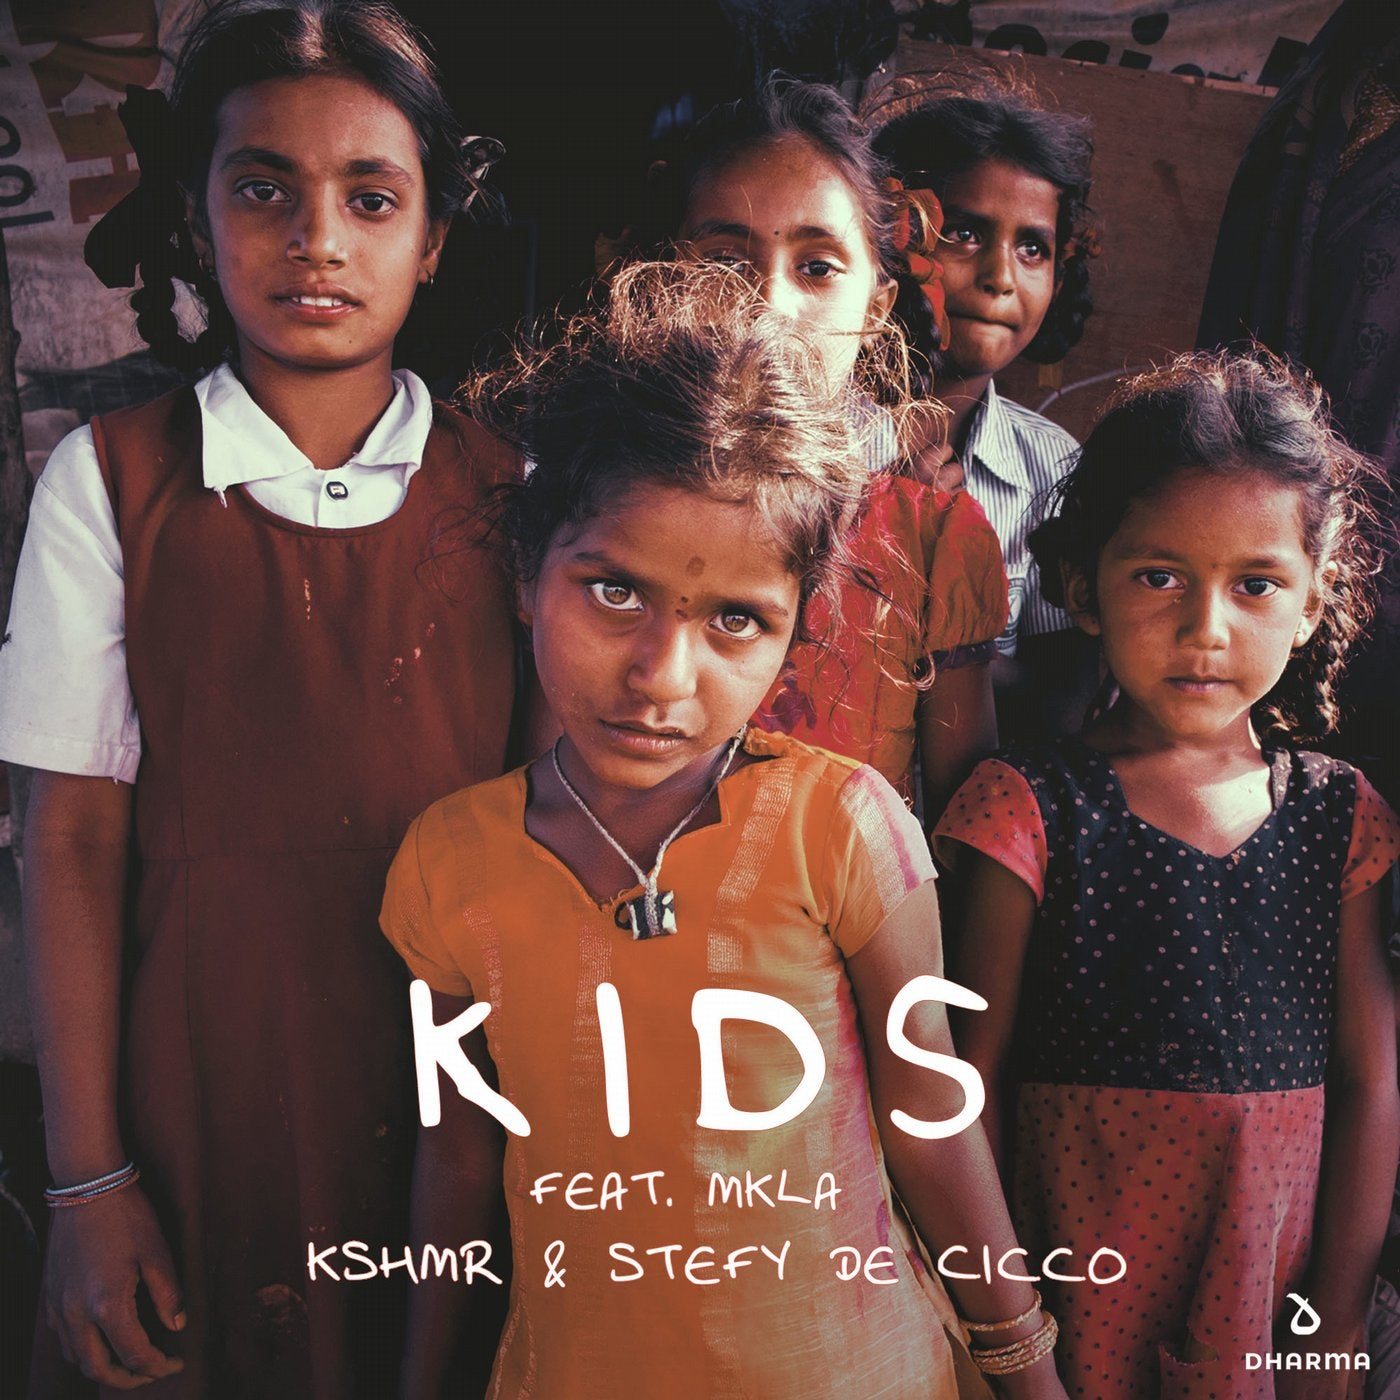 Kids (feat. MKLA) (Extended Mix)